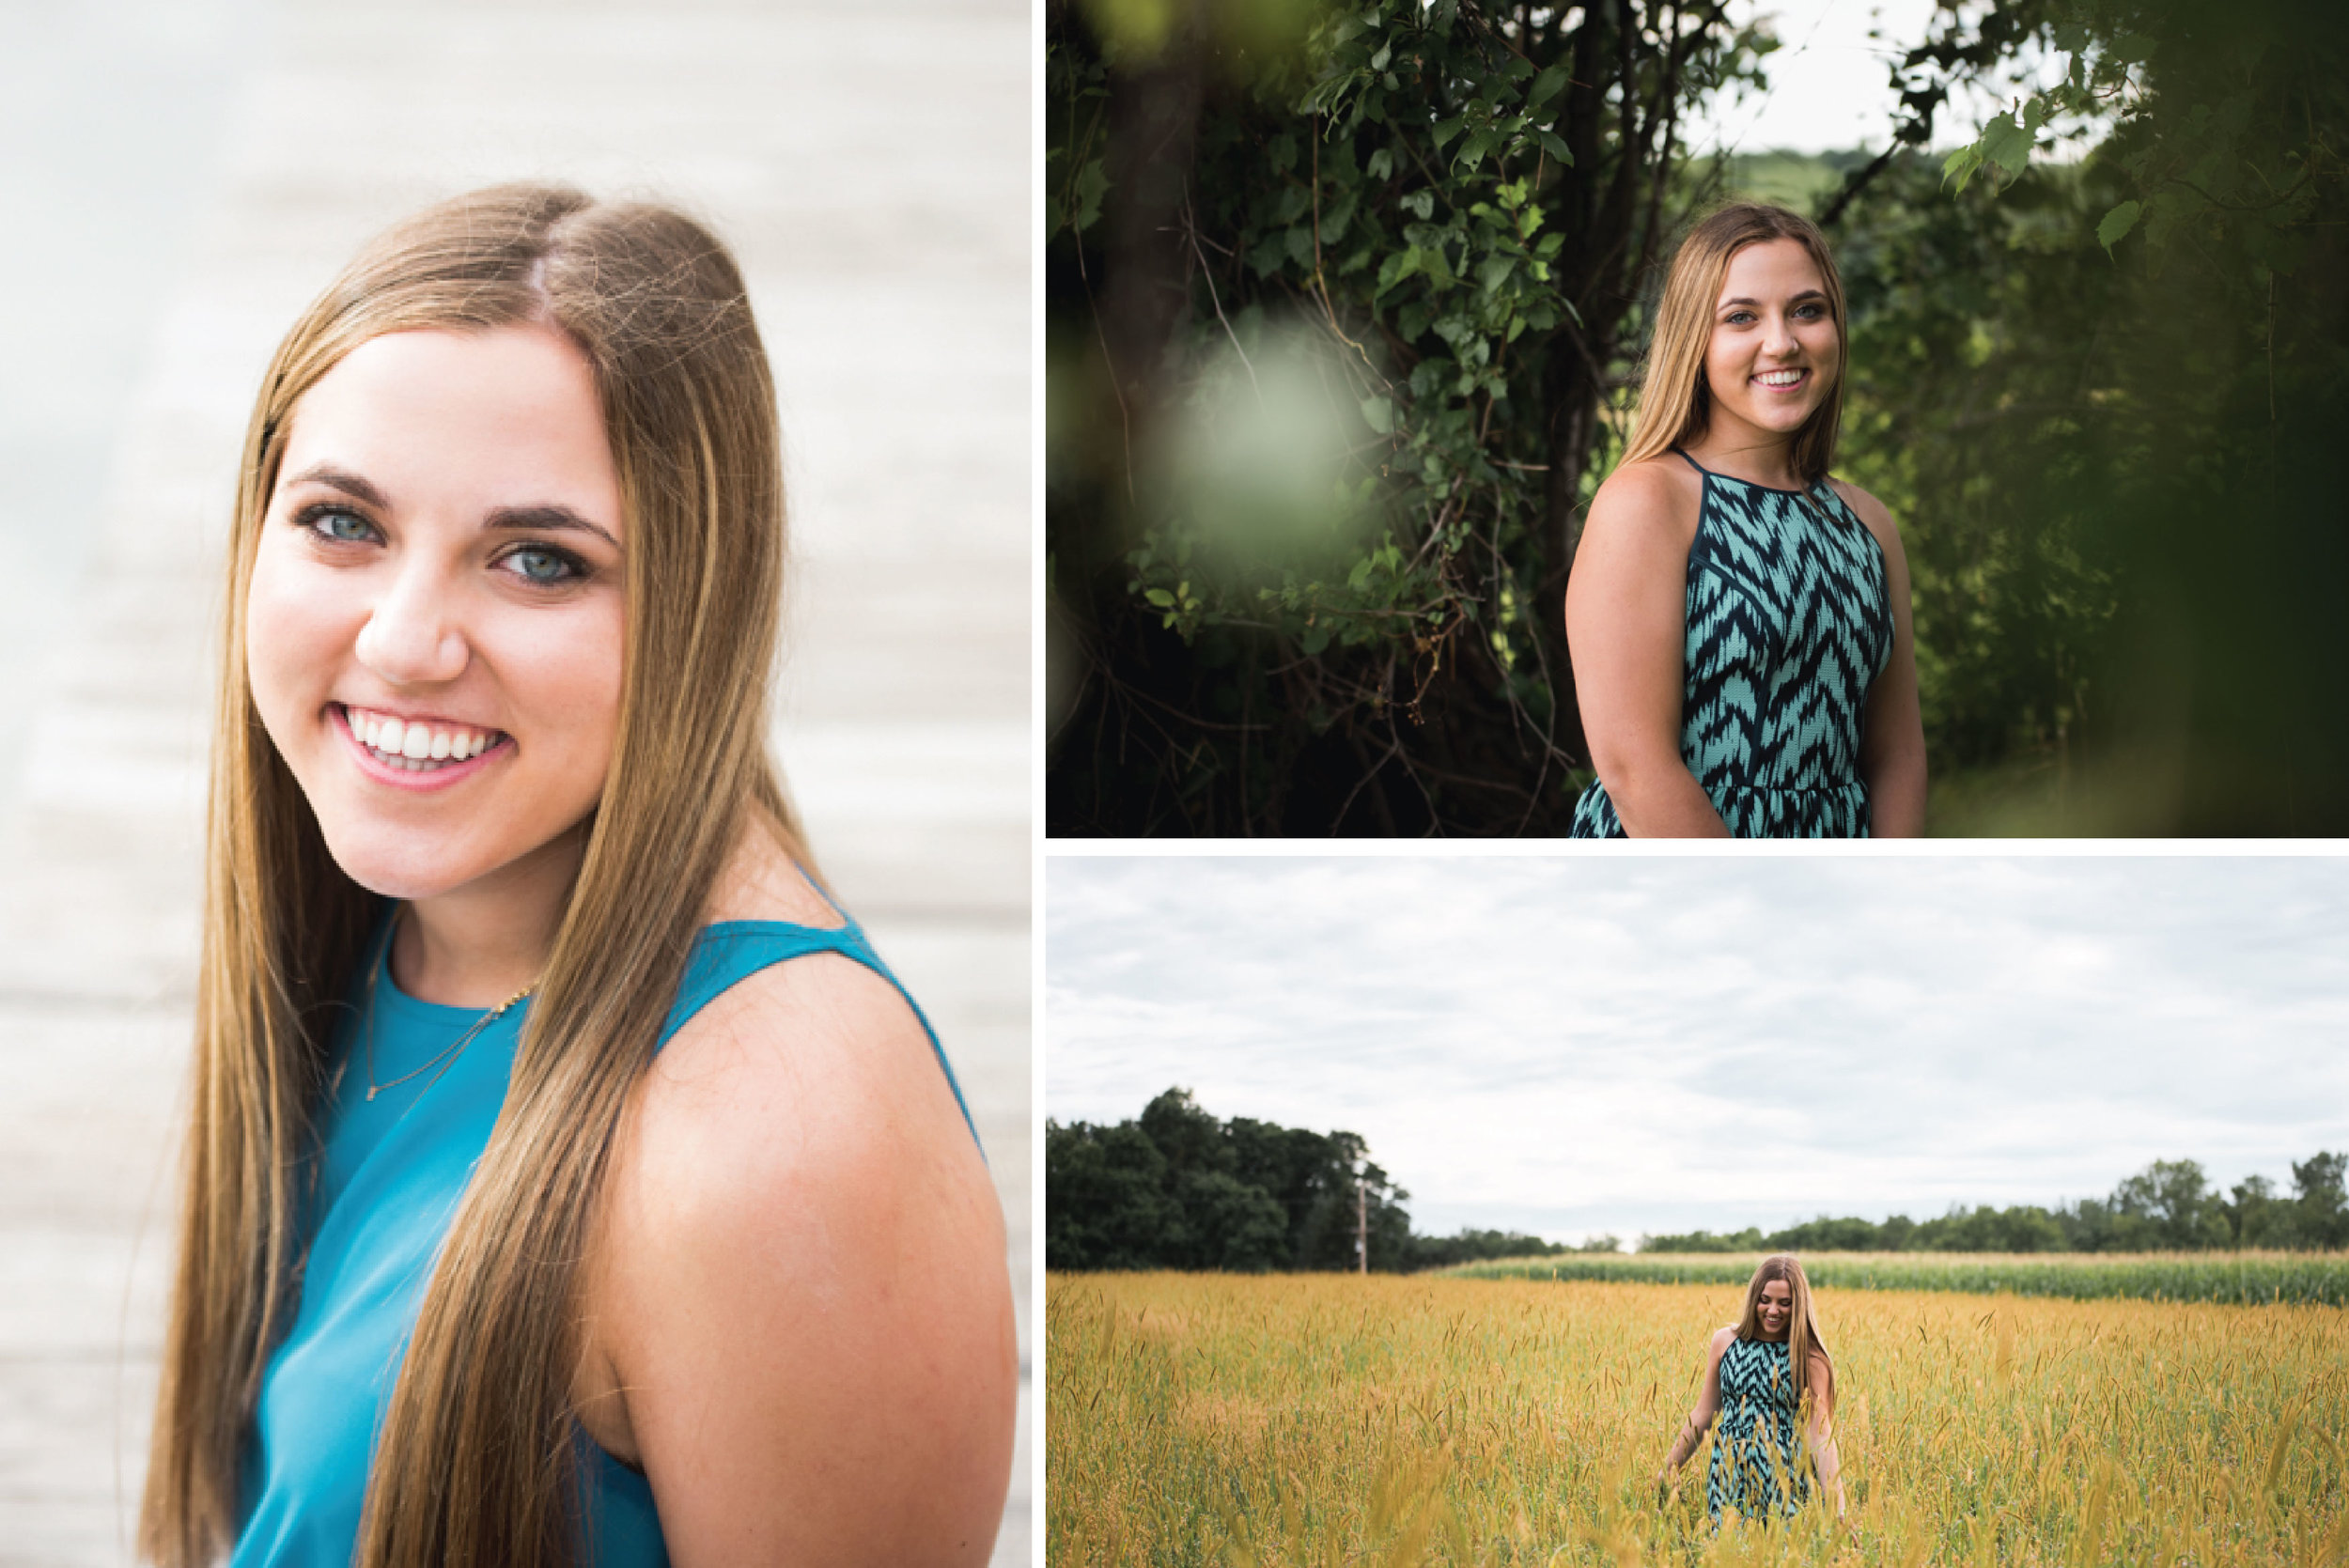 Sally - Pittsford, Ny - Check out this countryside senior session that took place at the canal in Pittsford, NY!